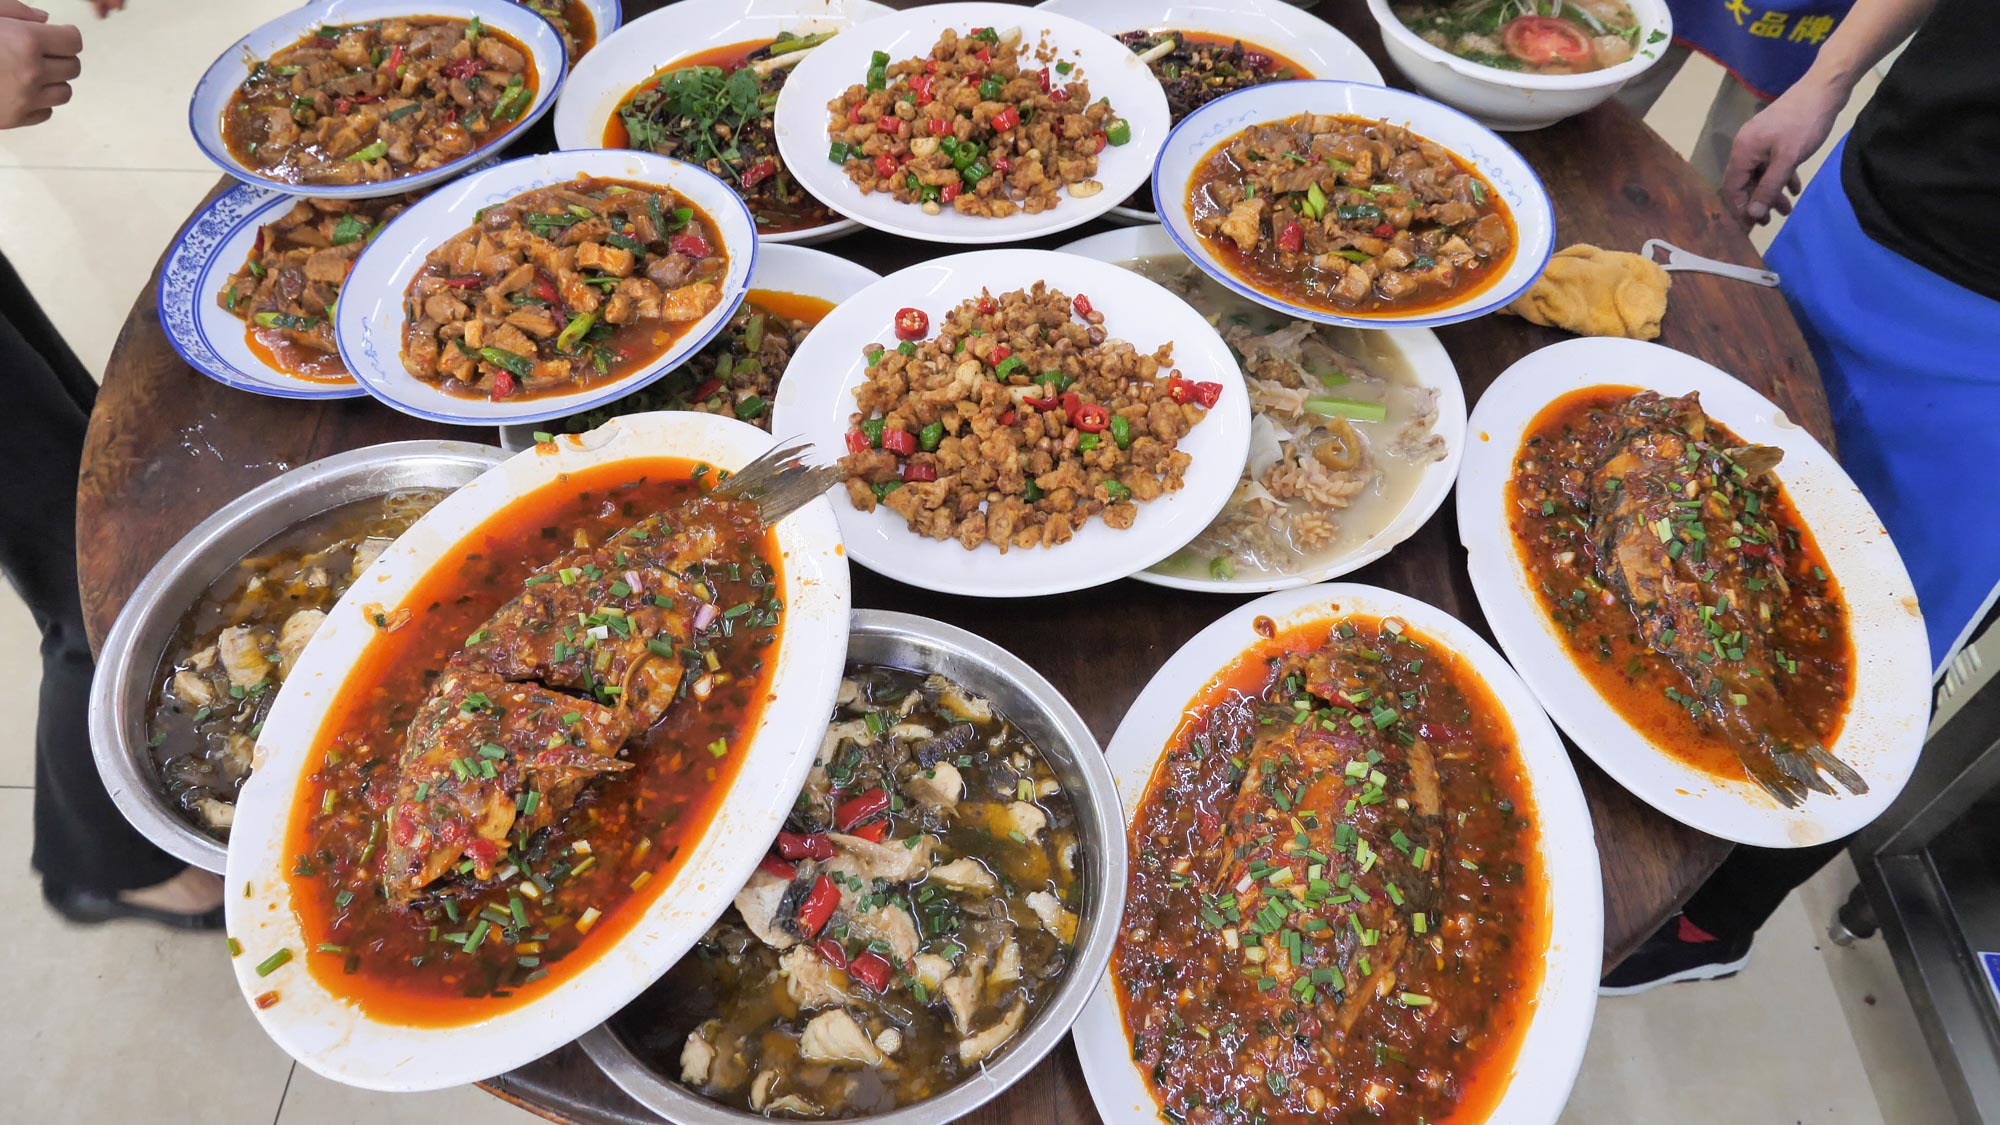 Food like this is enough to move to Sichuan for!